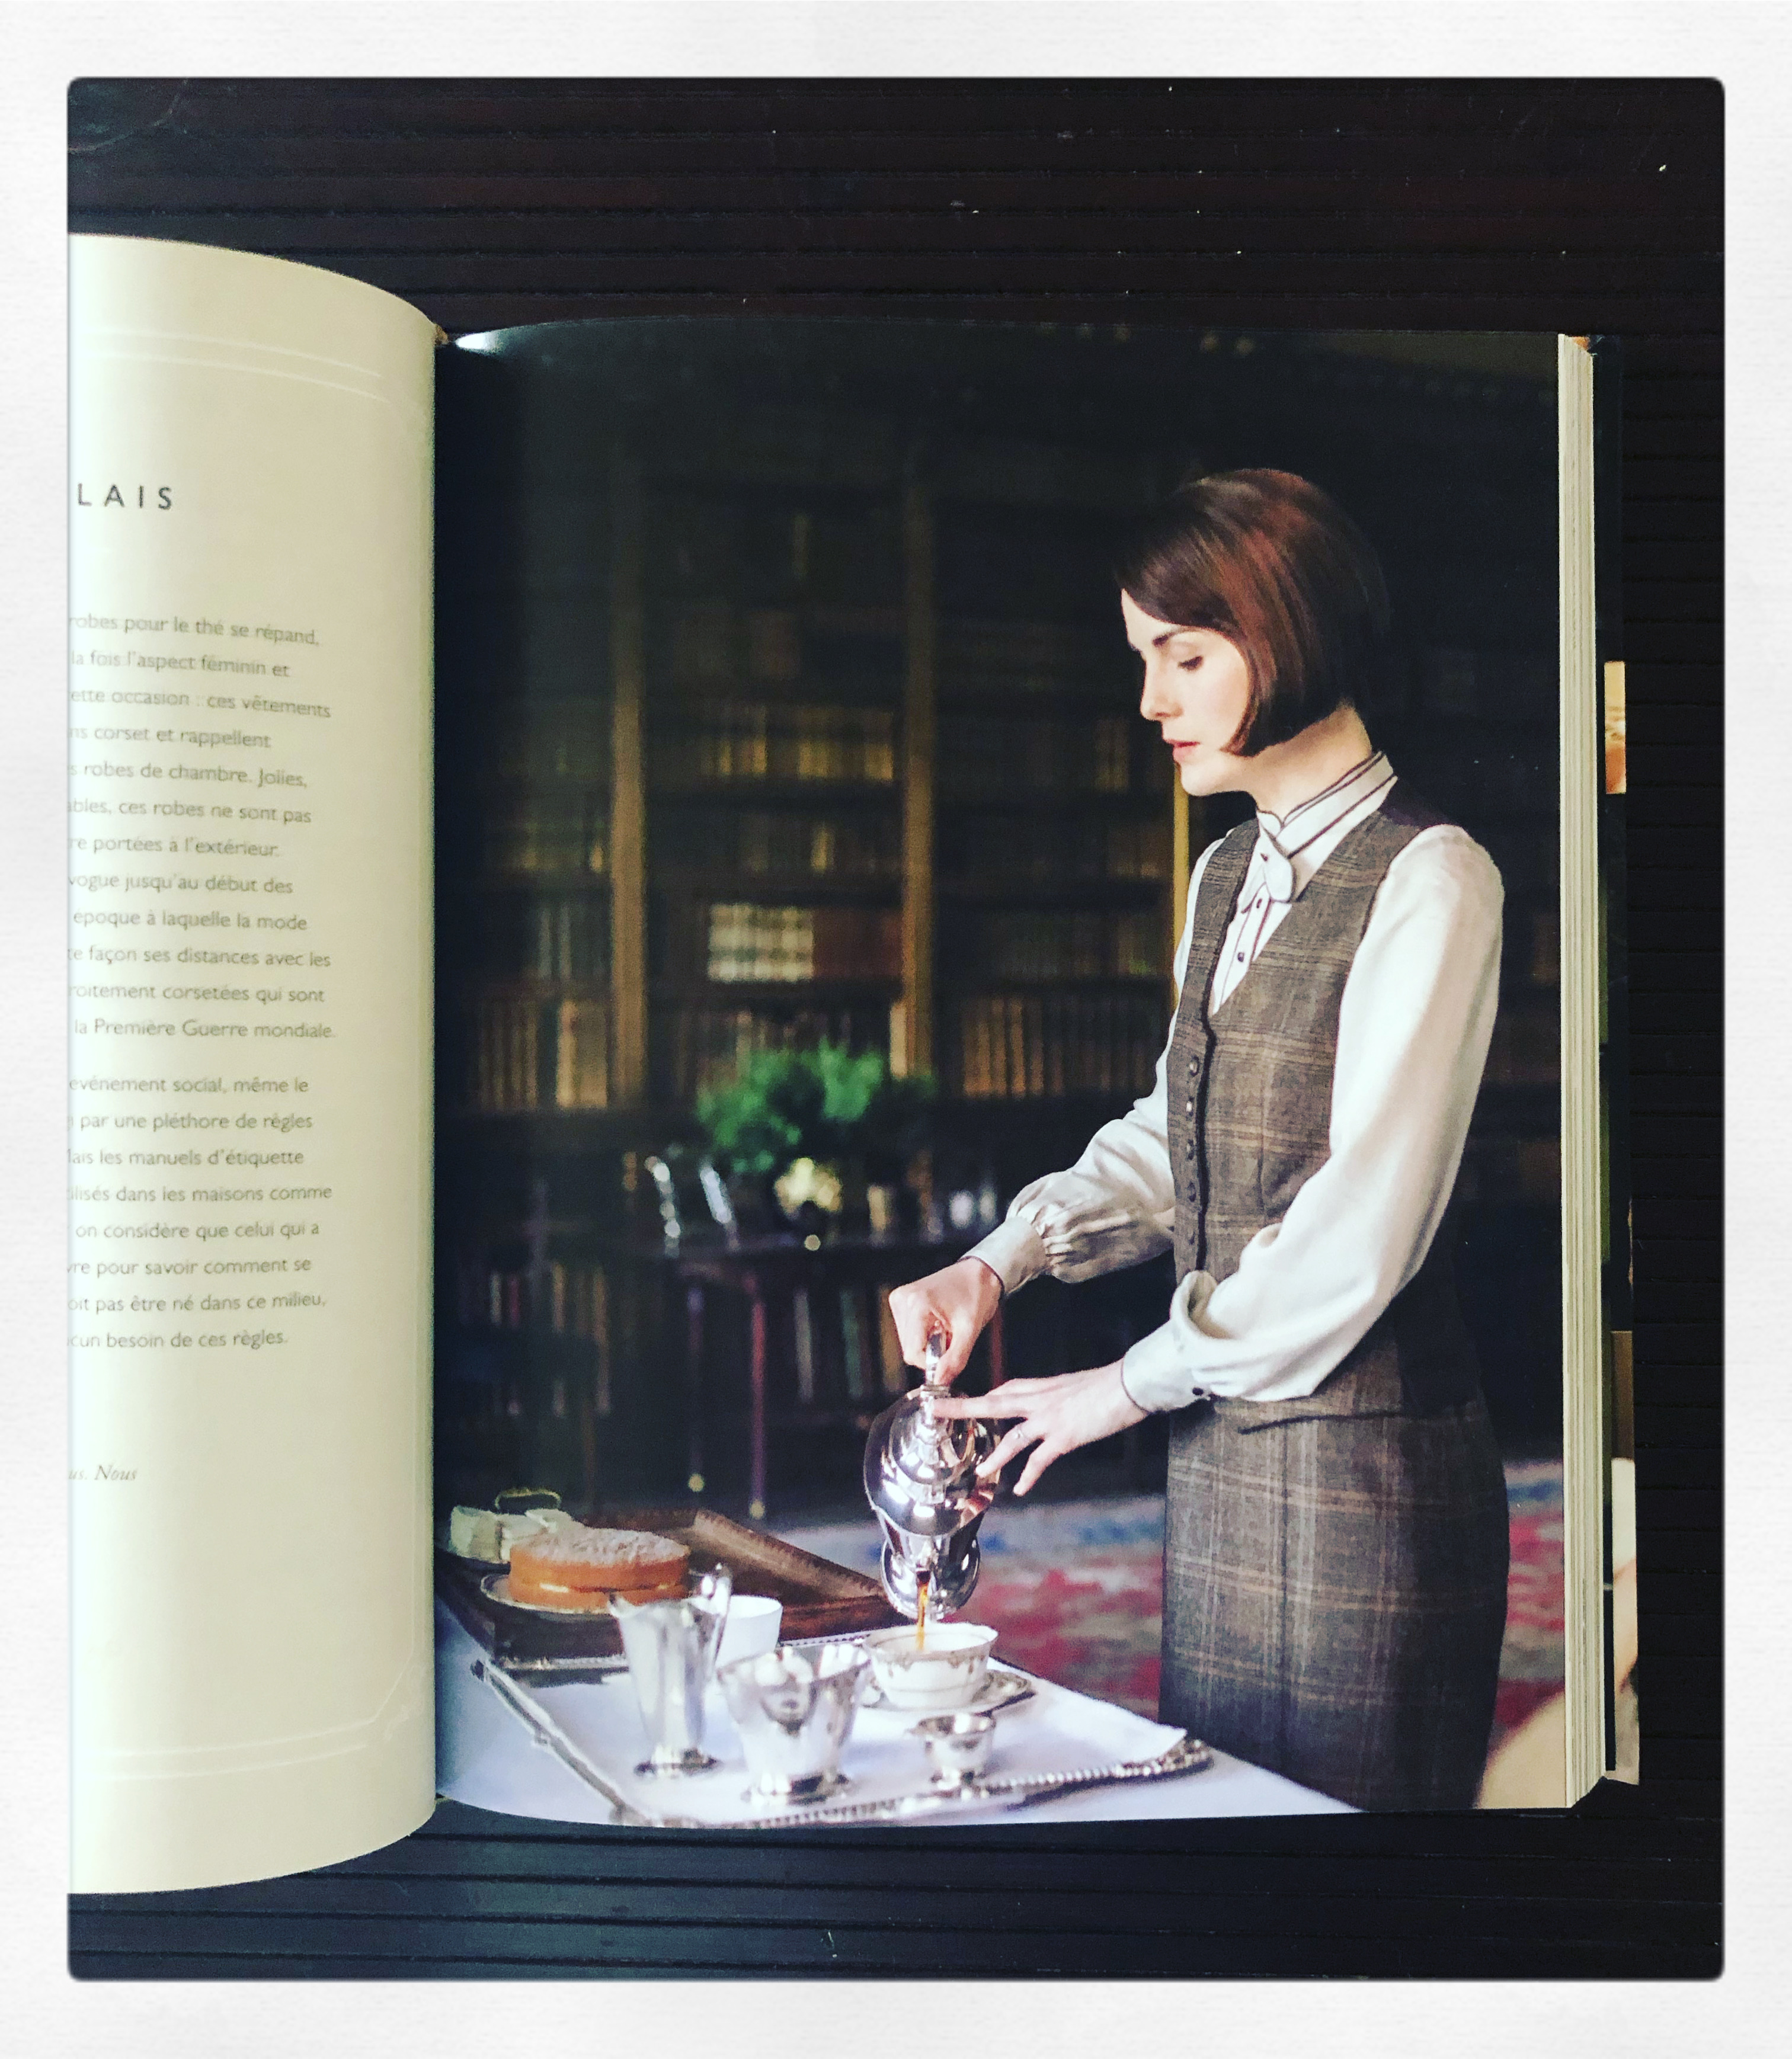 """Downton Abbey : le livre de cuisine"" d'Annie Gray..."